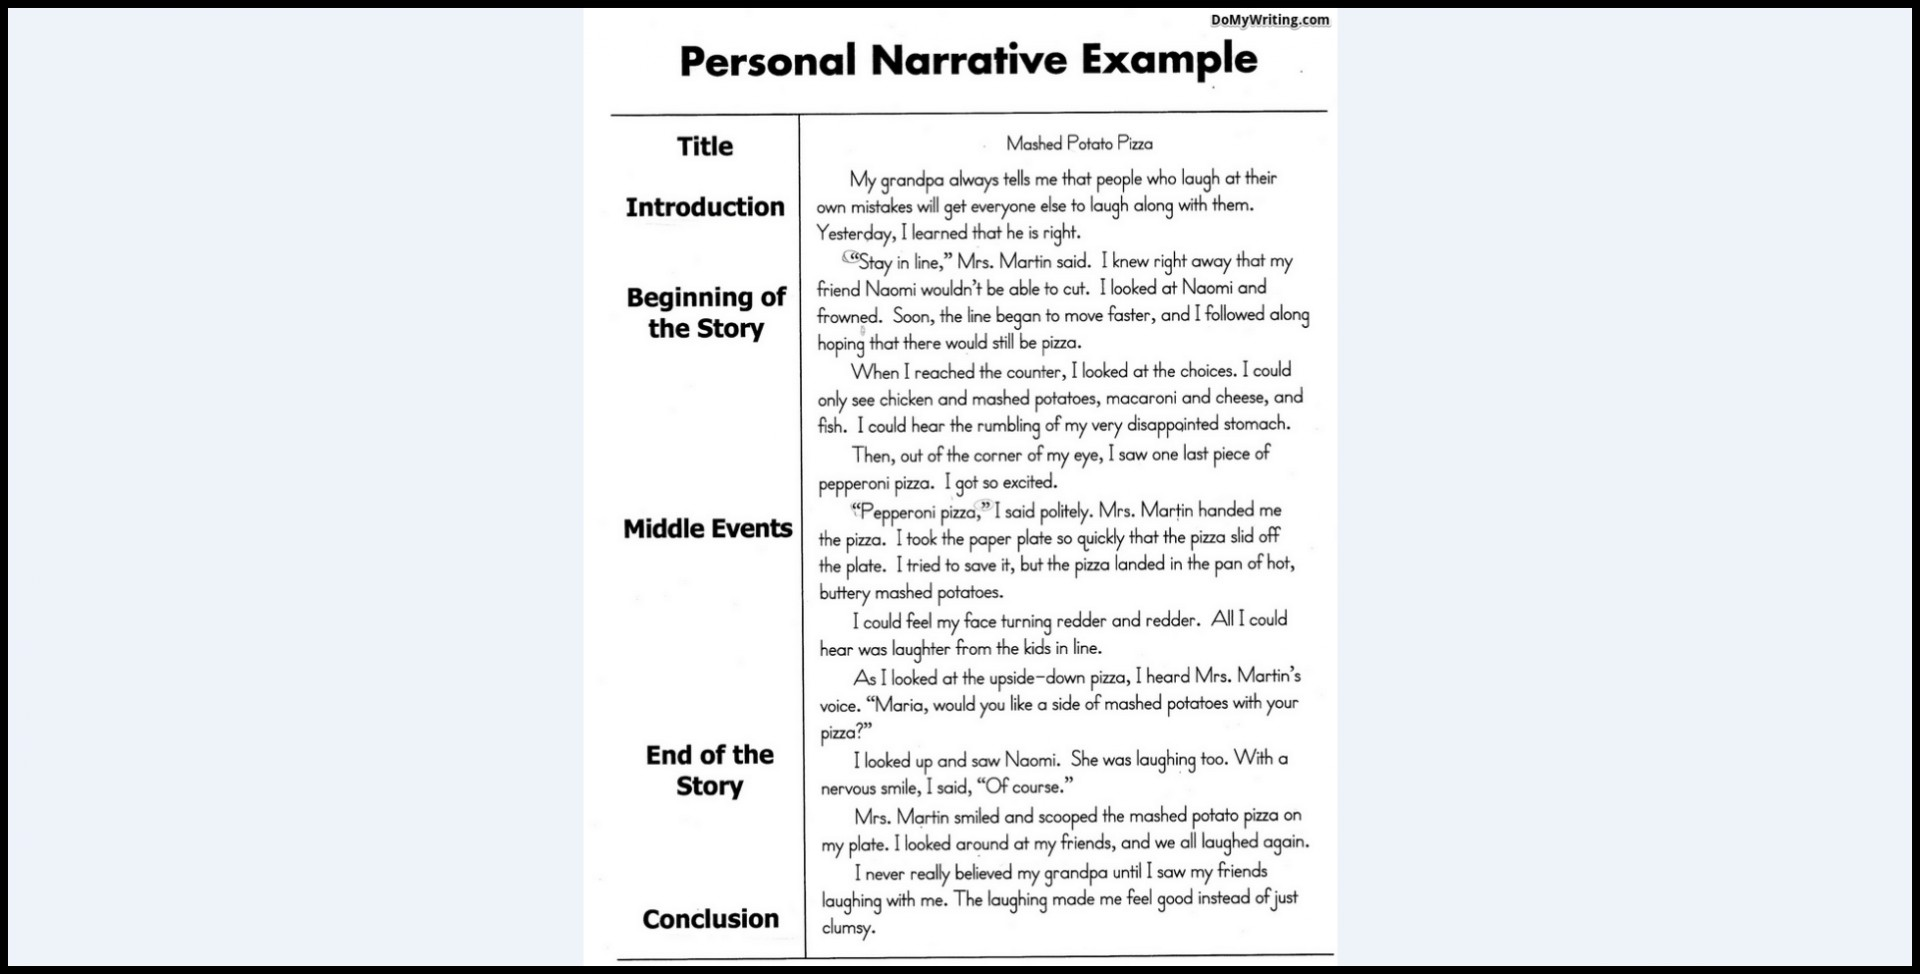 002 Narrative Essay Exceptional Rubric Outline Template Pdf Sample 1920